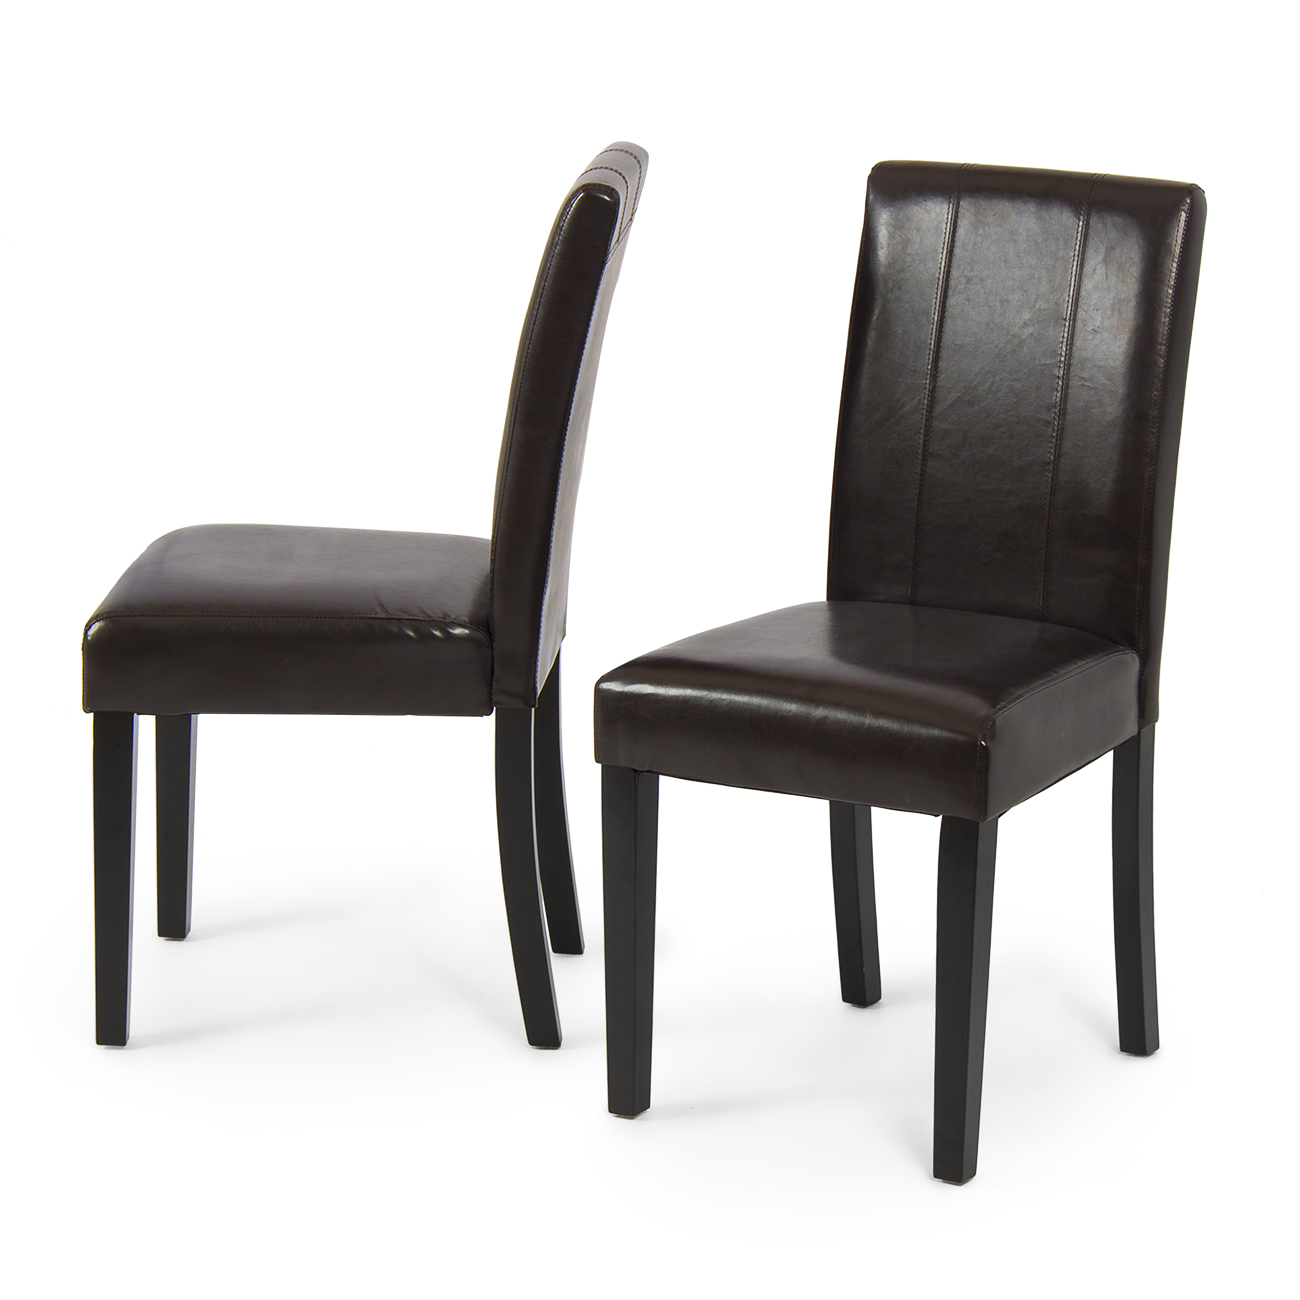 Porter Leather Chair Set Of 2: (Set Of 2) Elegant Modern Design Leather Parsons Dining